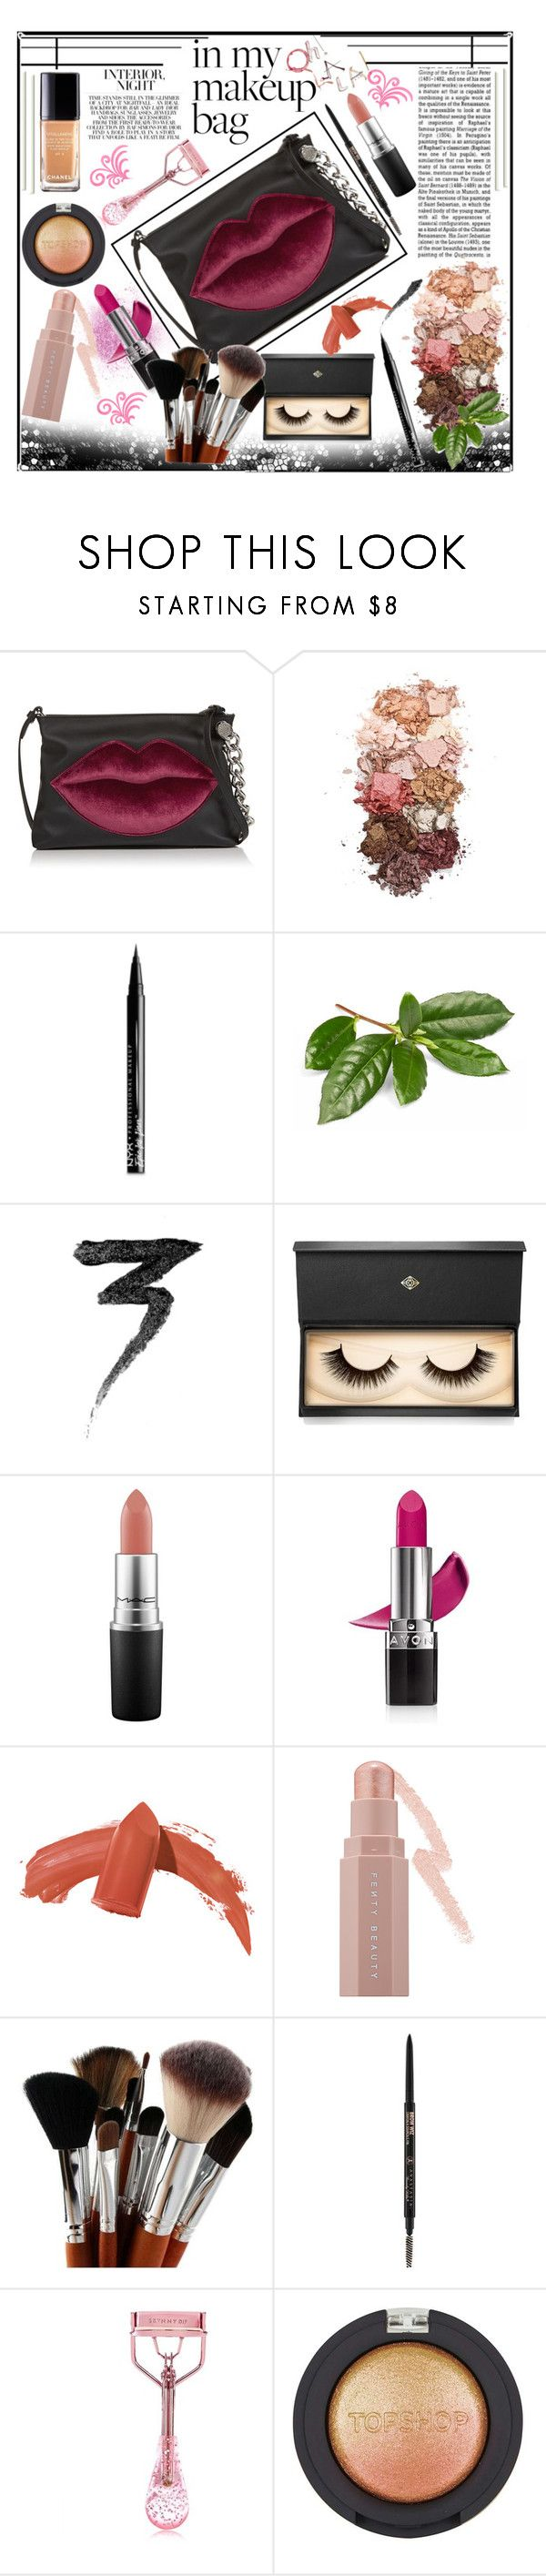 """""""In My Makeup Bag"""" by jeneric2015 ❤ liked on Polyvore featuring beauty, Kendall + Kylie, Sigma, NYX, Manic Panic NYC, Lash Star Beauty, MAC Cosmetics, Avon, Puma and Anastasia Beverly Hills"""